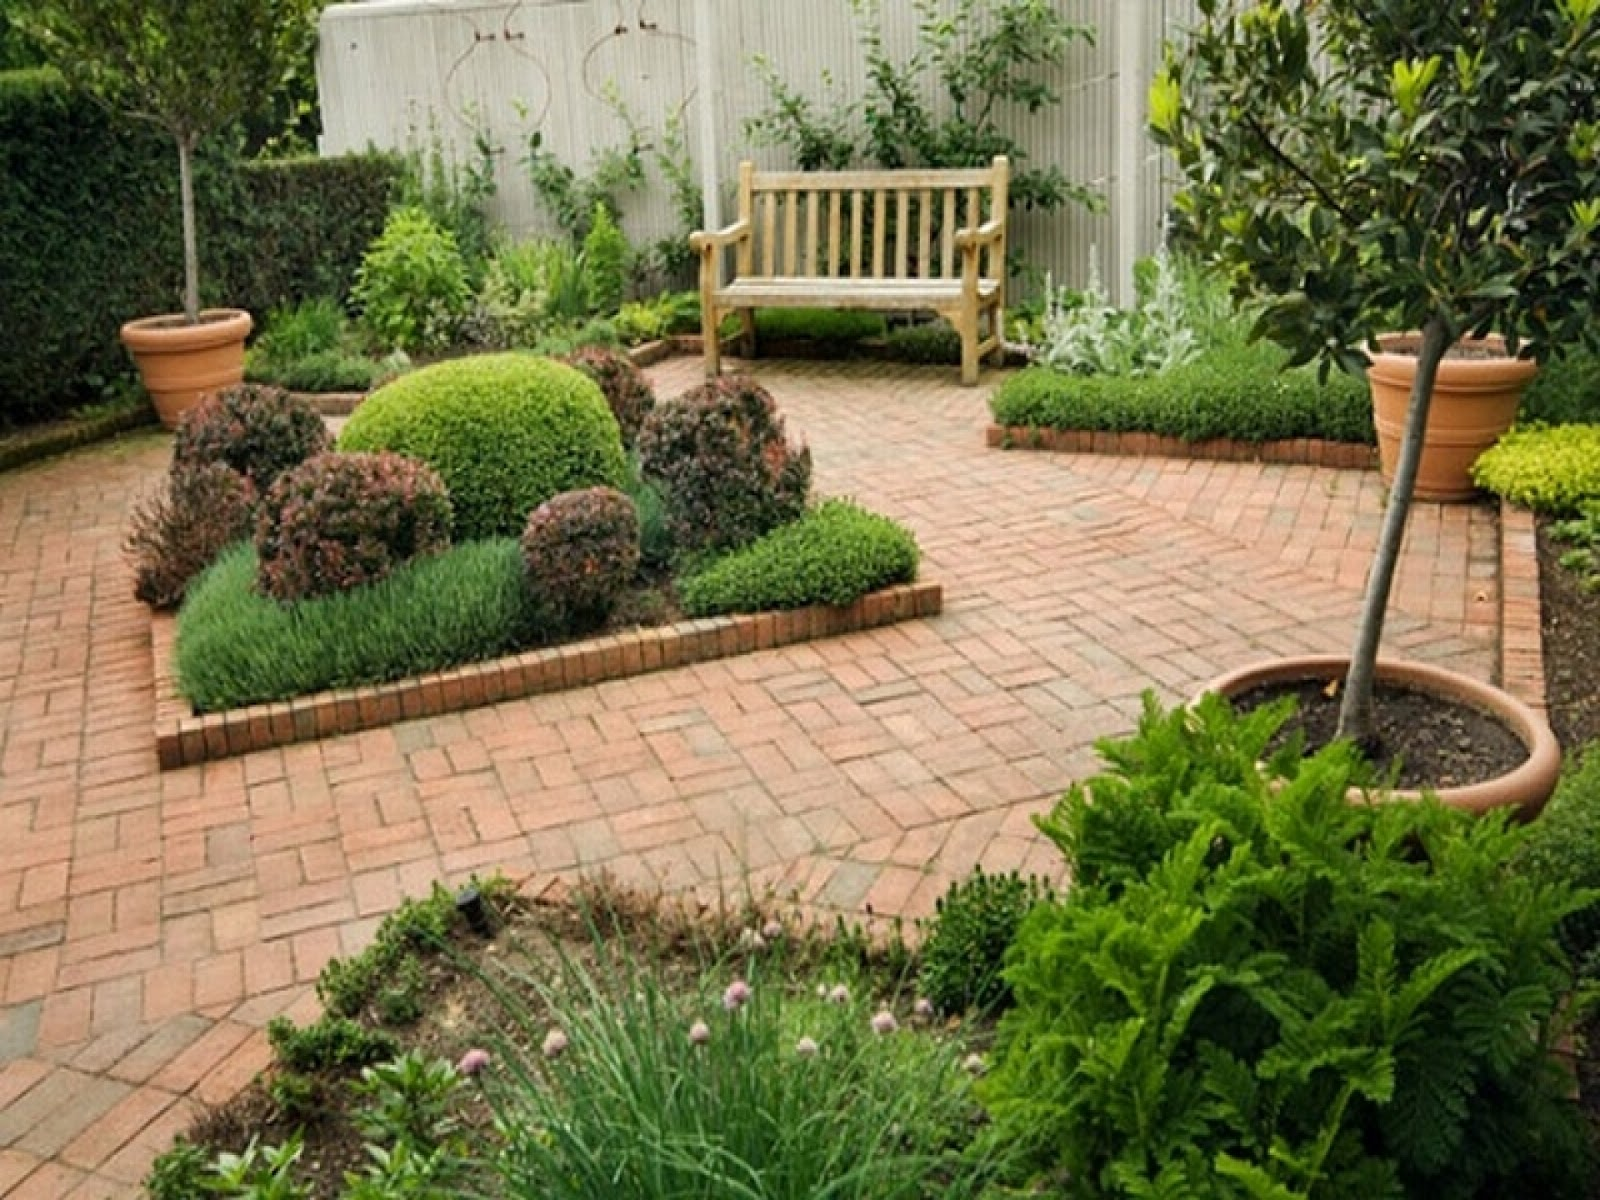 Small garden design ideas cool little garden for Garden layout ideas small garden